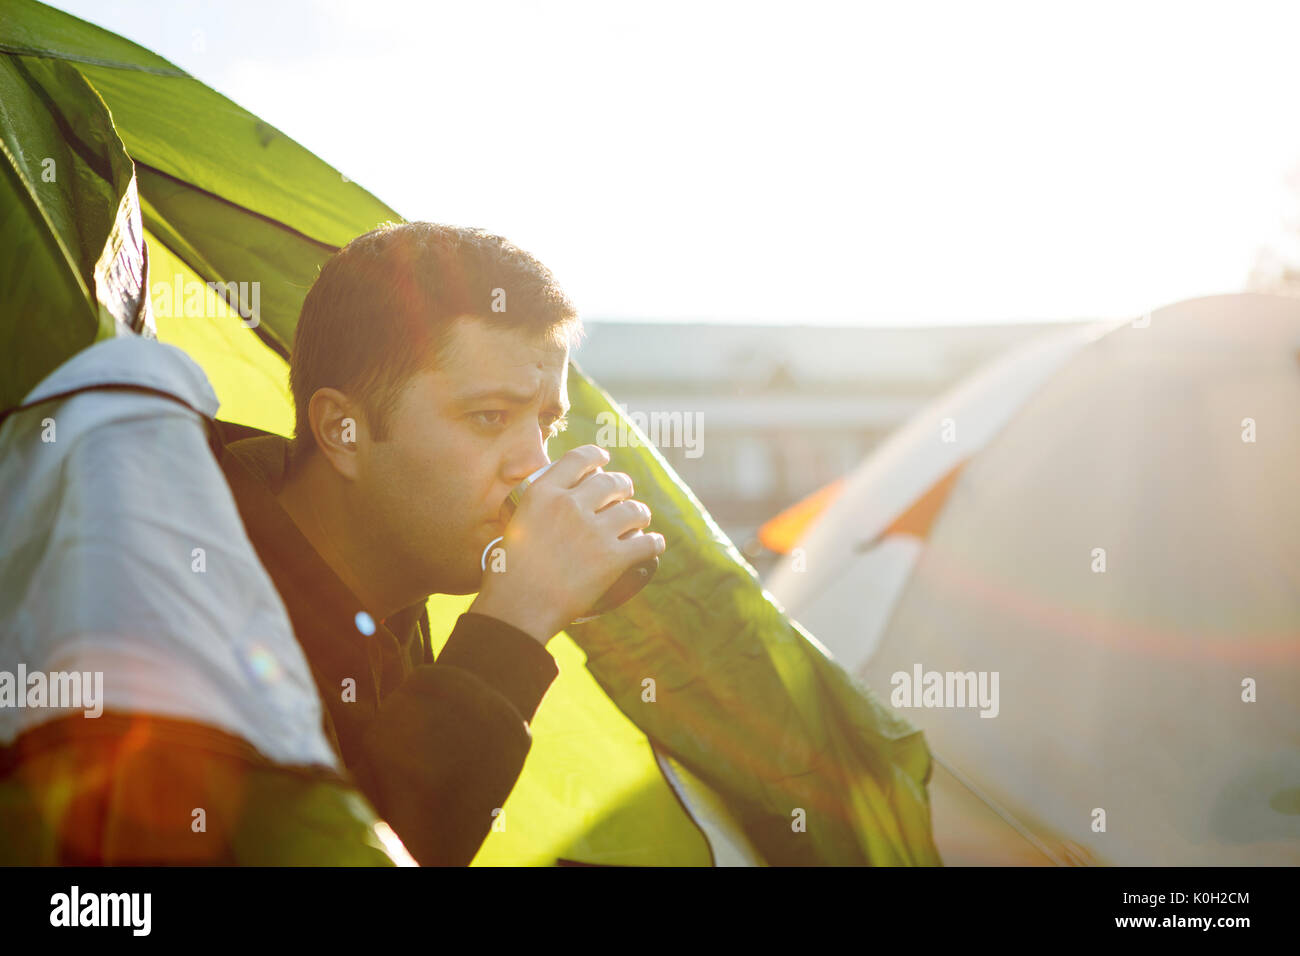 Photo of man in tent - Stock Image